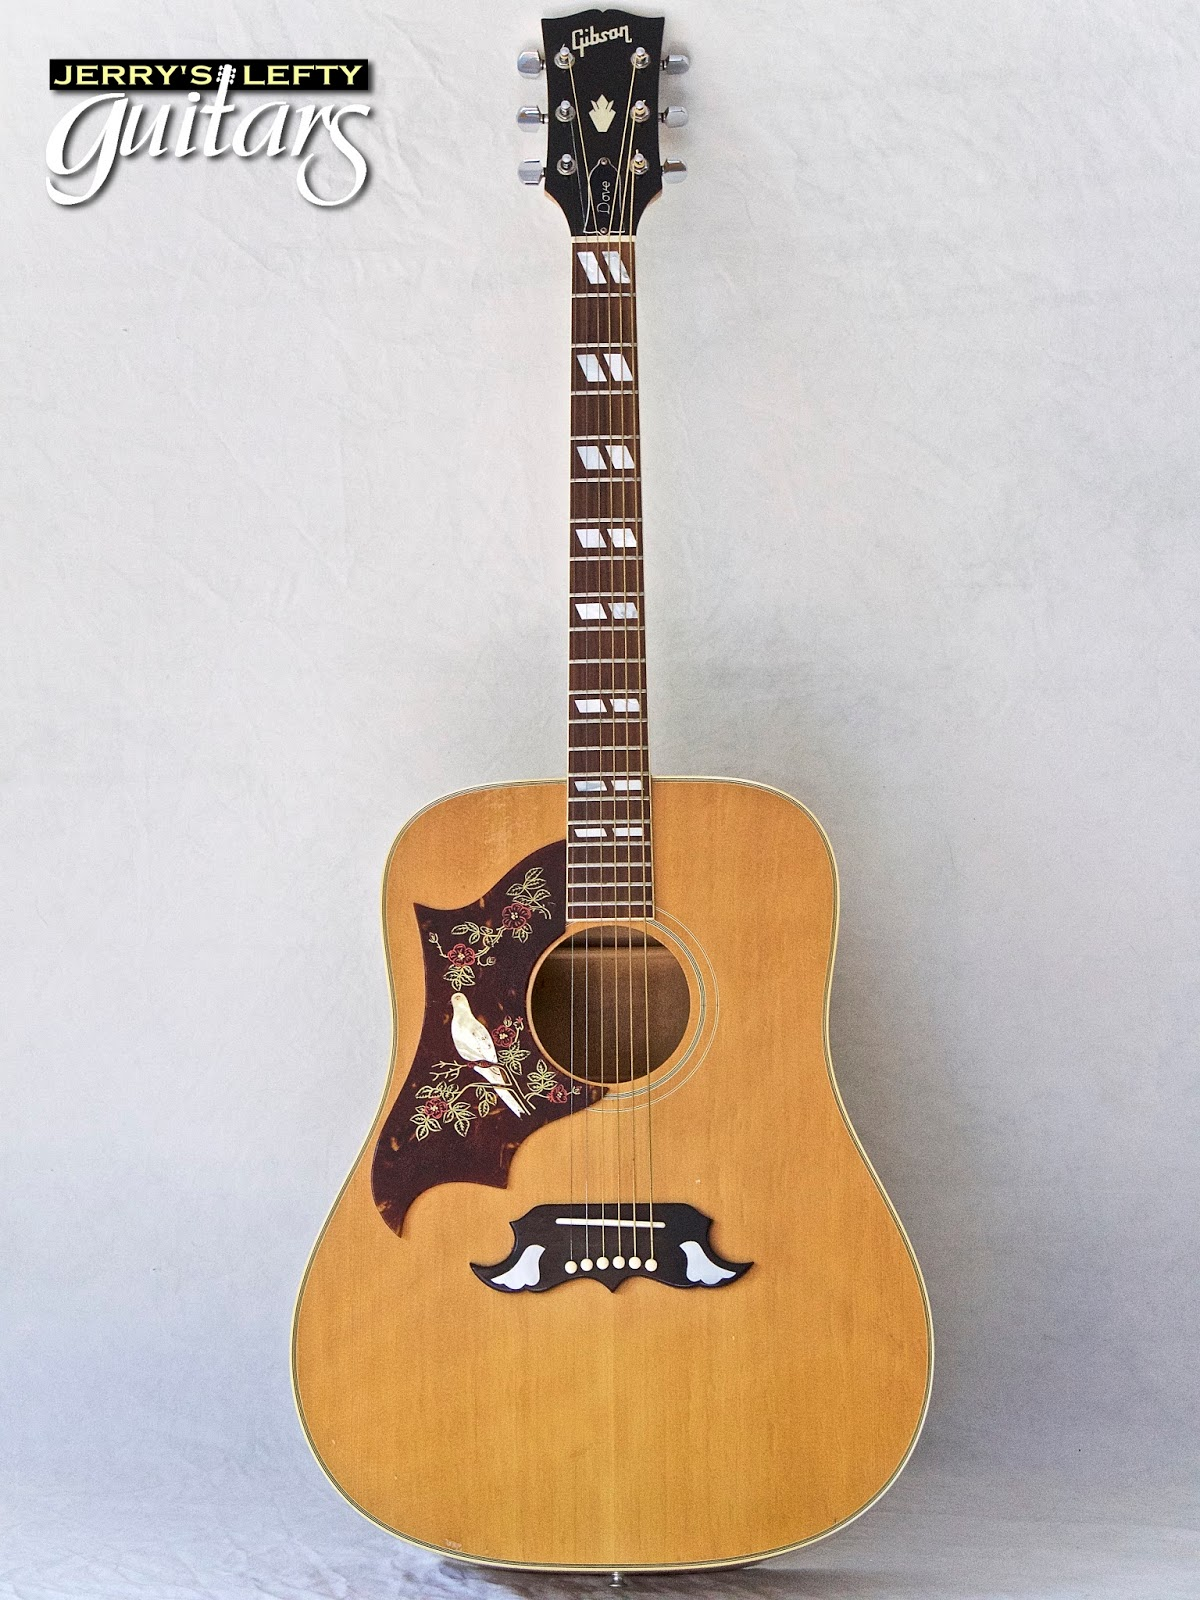 jerry 39 s lefty guitars newest guitar arrivals updated weekly 1968 gibson dove left handed. Black Bedroom Furniture Sets. Home Design Ideas